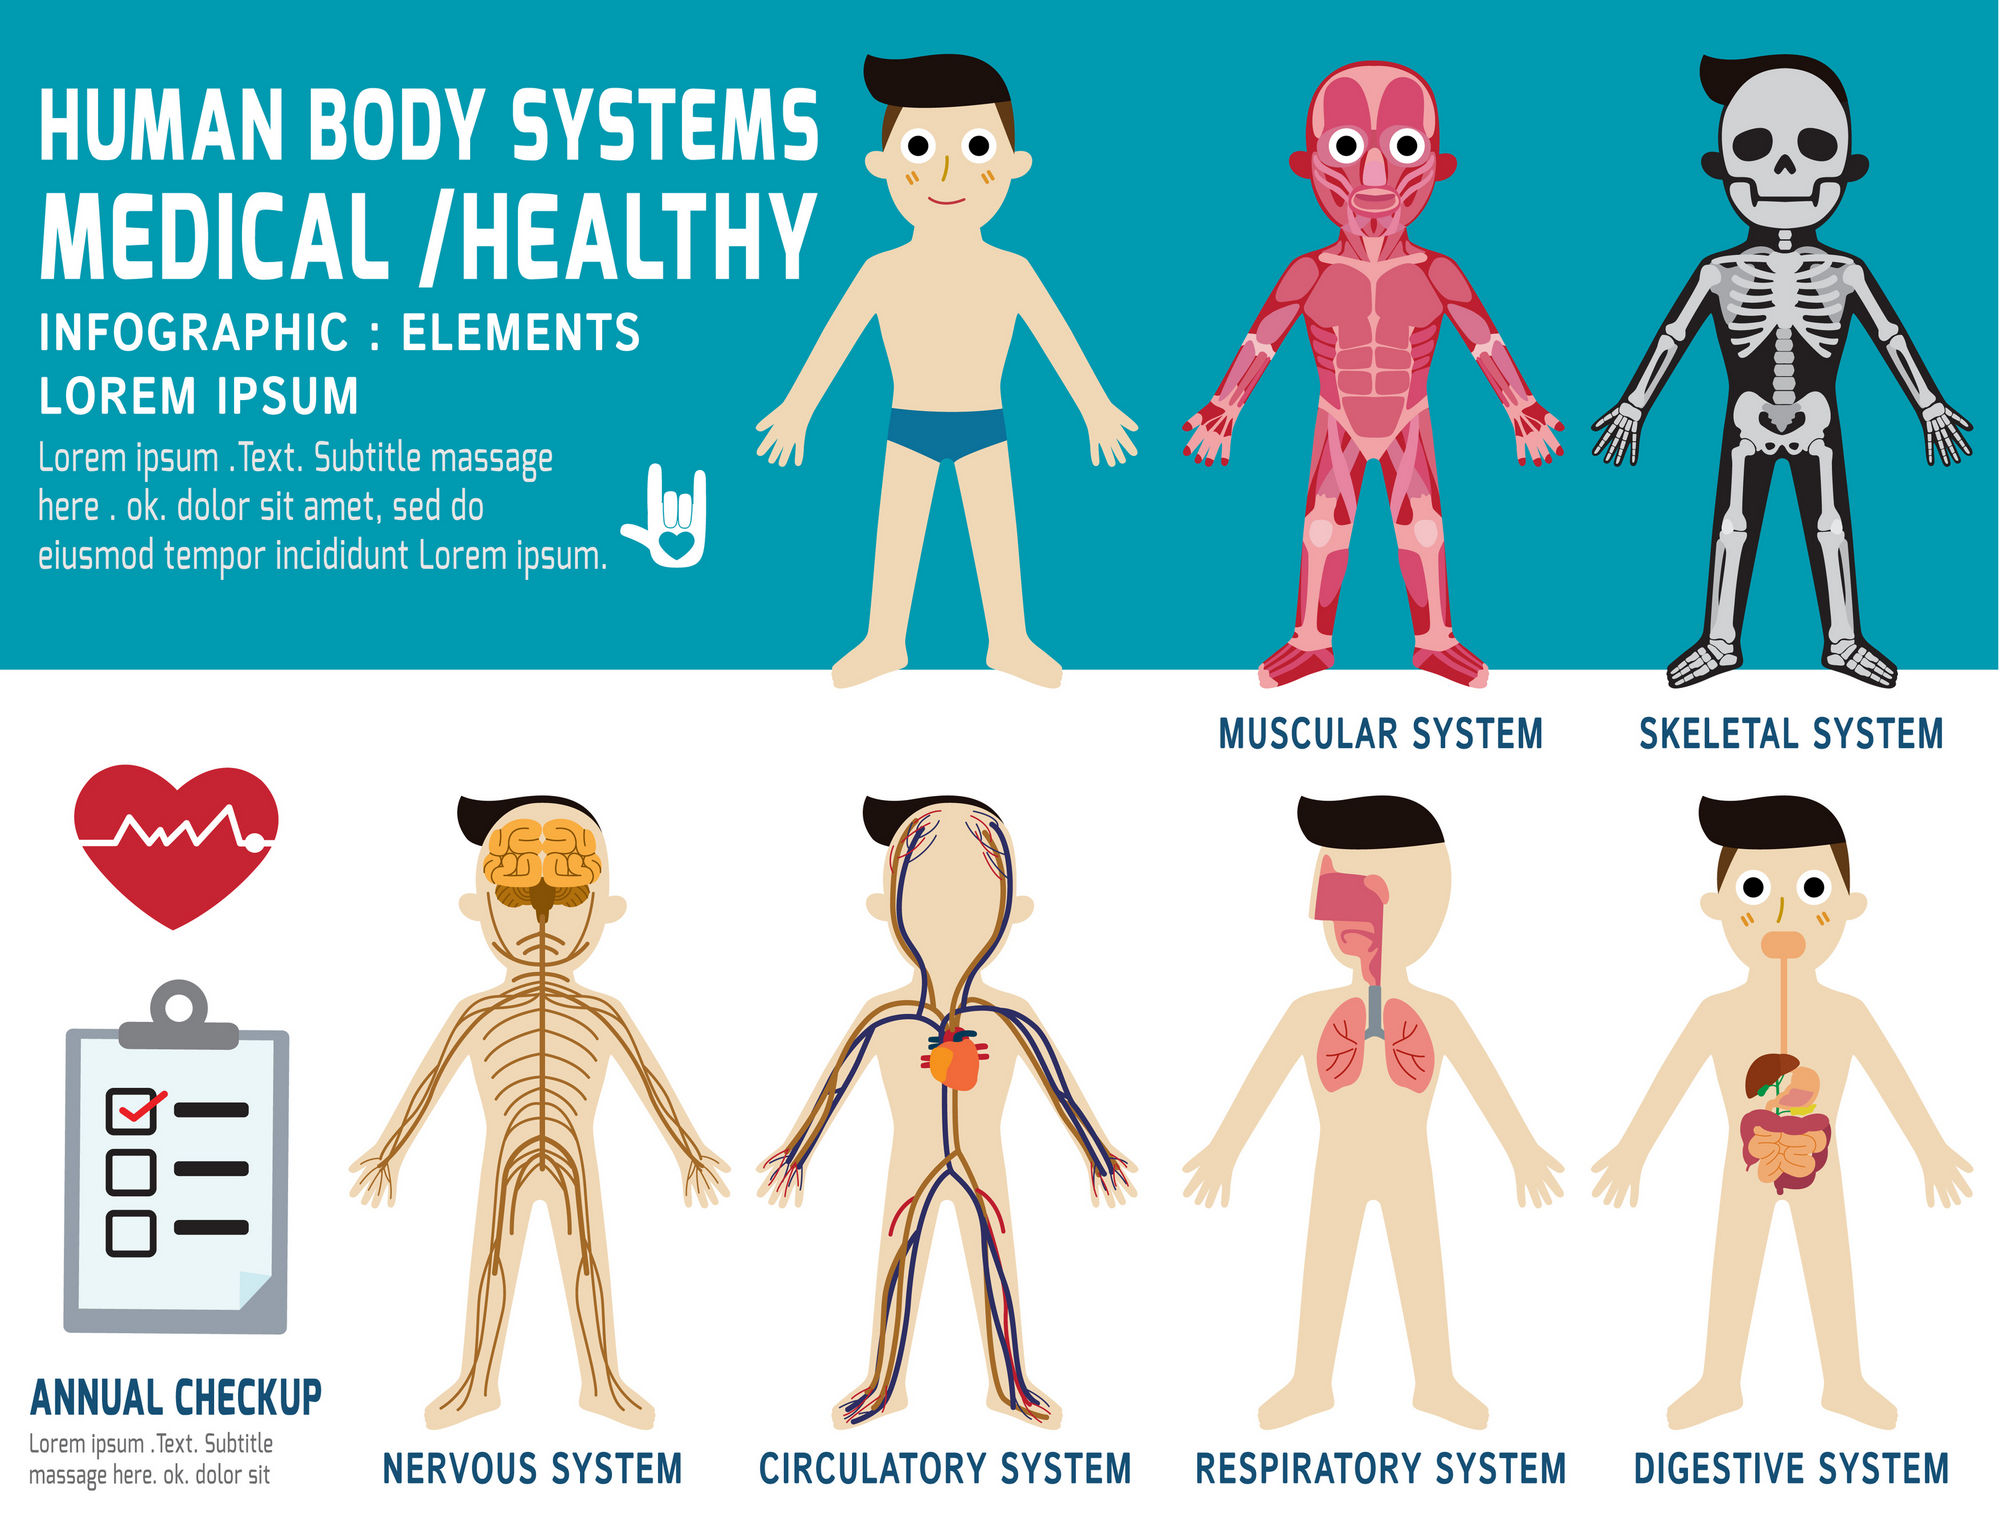 human body systems, annual checkup,anatomy body organ chart, muscular, skeletal, circulatory, nervous and digestive, vector flat icons design, health concept, illustration